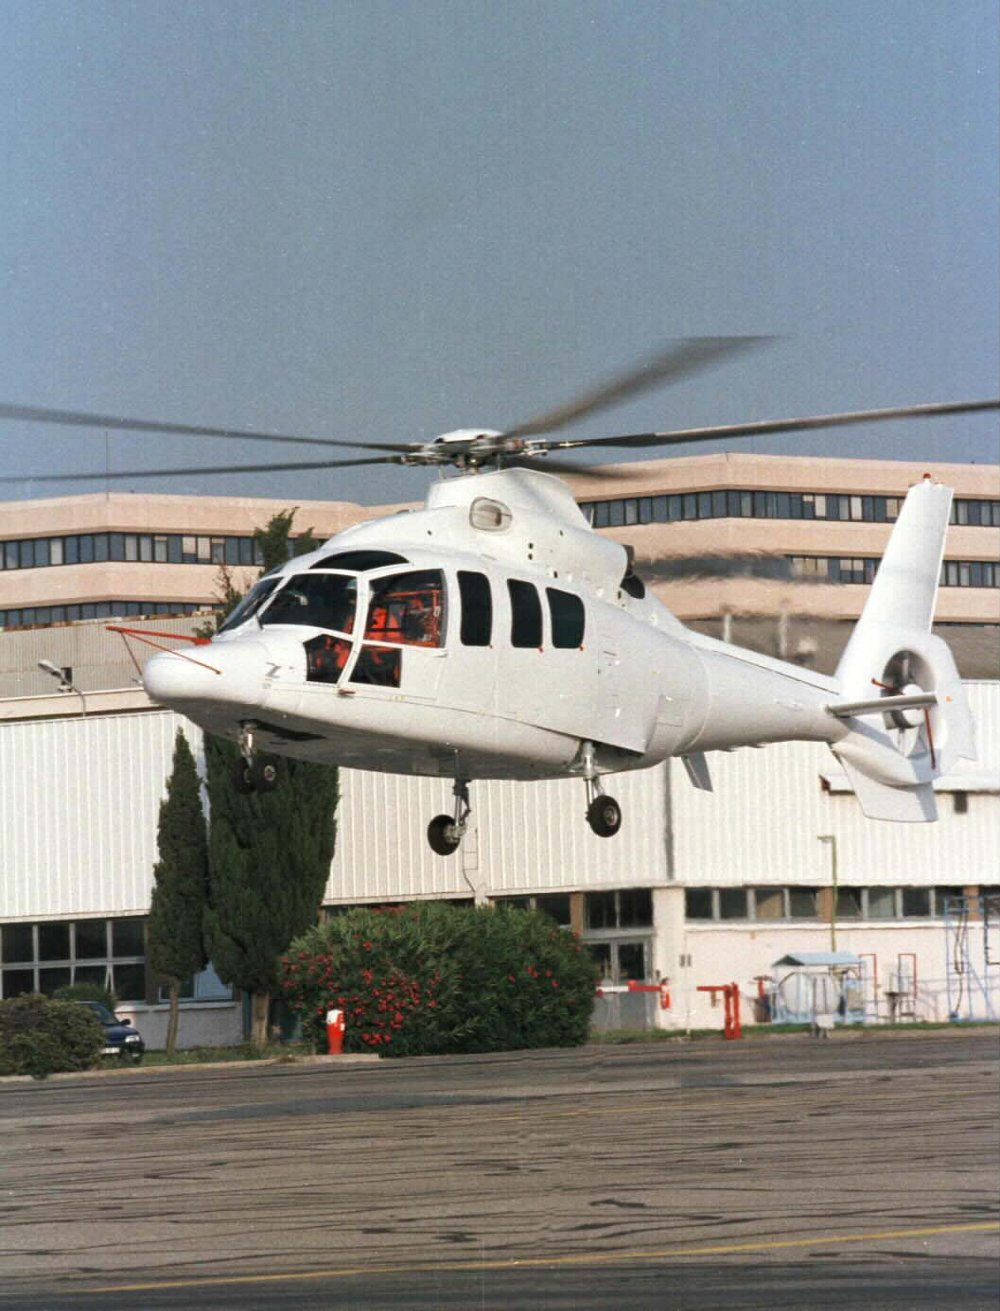 Airbus' twin-engine H155 in white livery landing